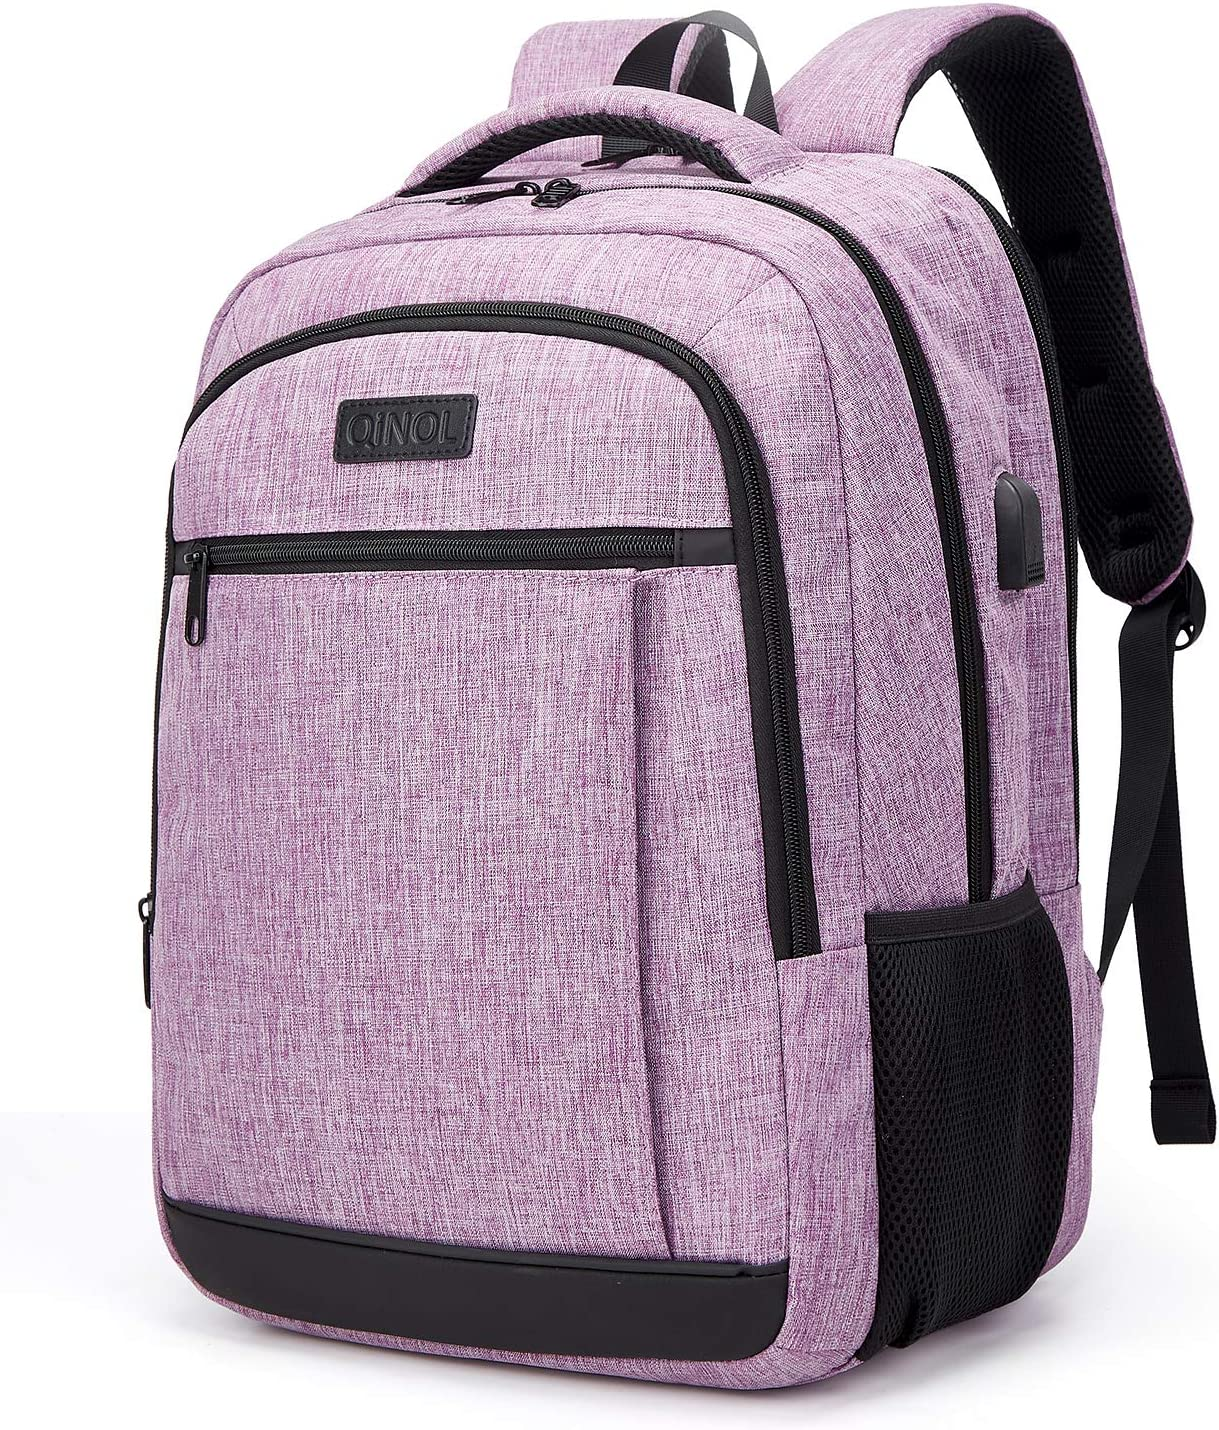 QINOL Travel Laptop Backpack Water-Proof Anti-Theft School Bag with USD Hub for 15.6 Inch Computer, Ultralight Business Bag, 5 Color (Purple)